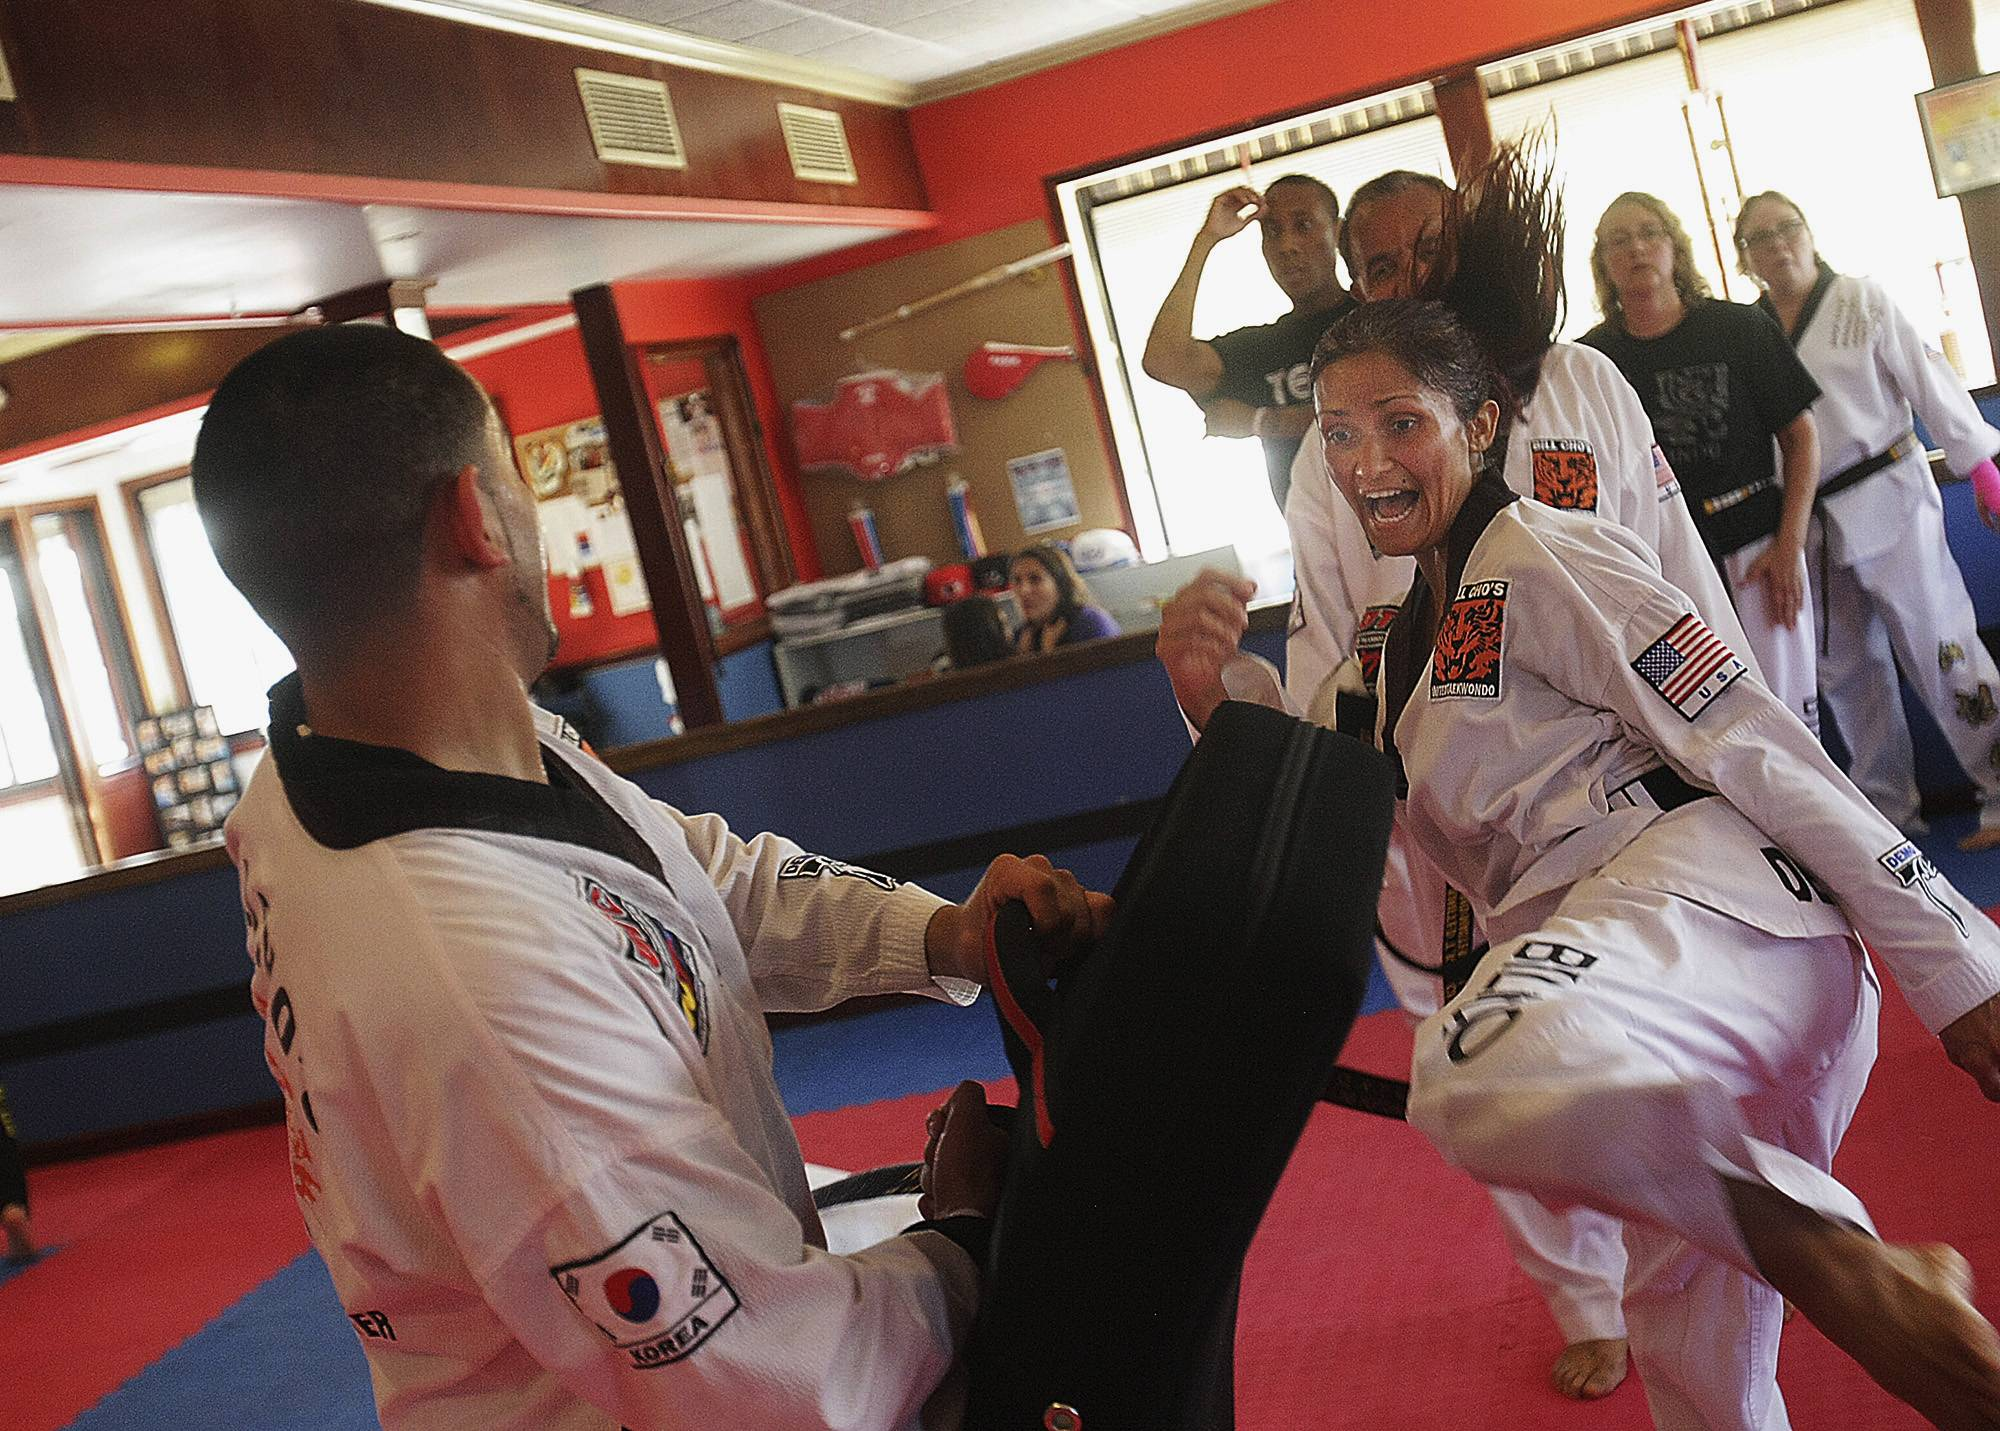 Katherine Hryniewicki, right, of Sycamore,  kicks a bag held by Victor Perez during a class at Bill Cho's United Taekwondo Center in Sycamore.